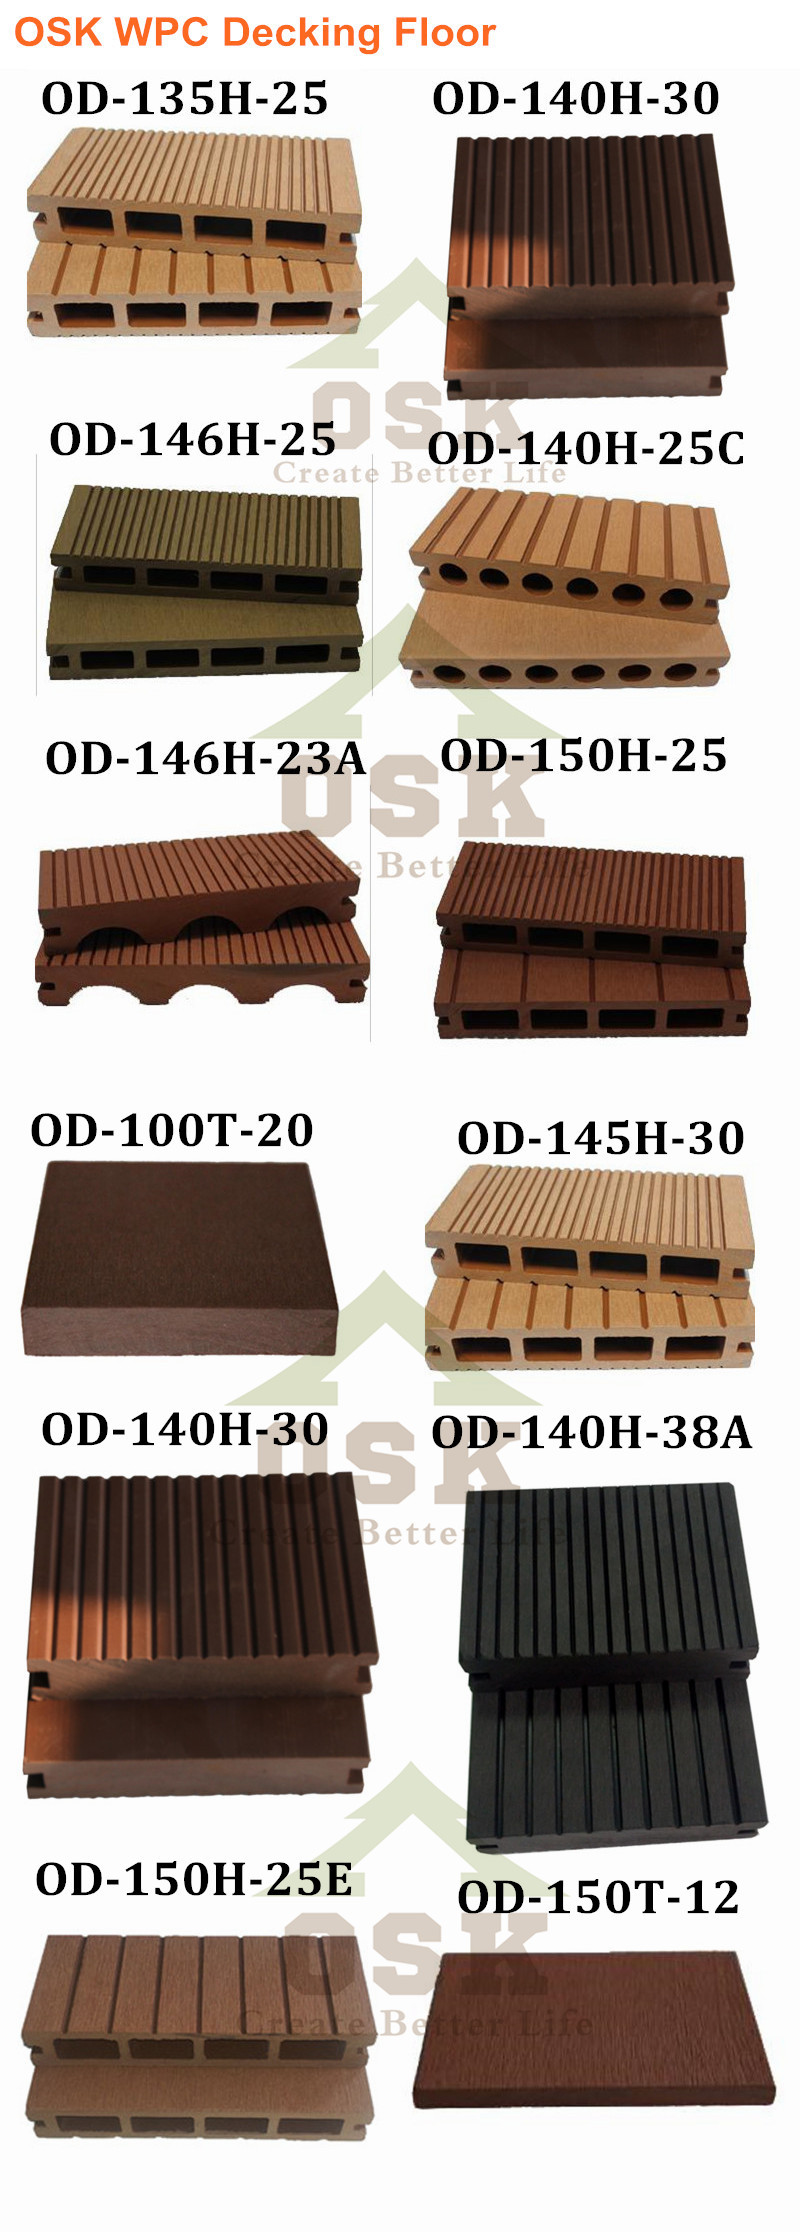 High Quality Waterproof UV-resistant Wood Plastic Composite Wpc Diy Deck Tile